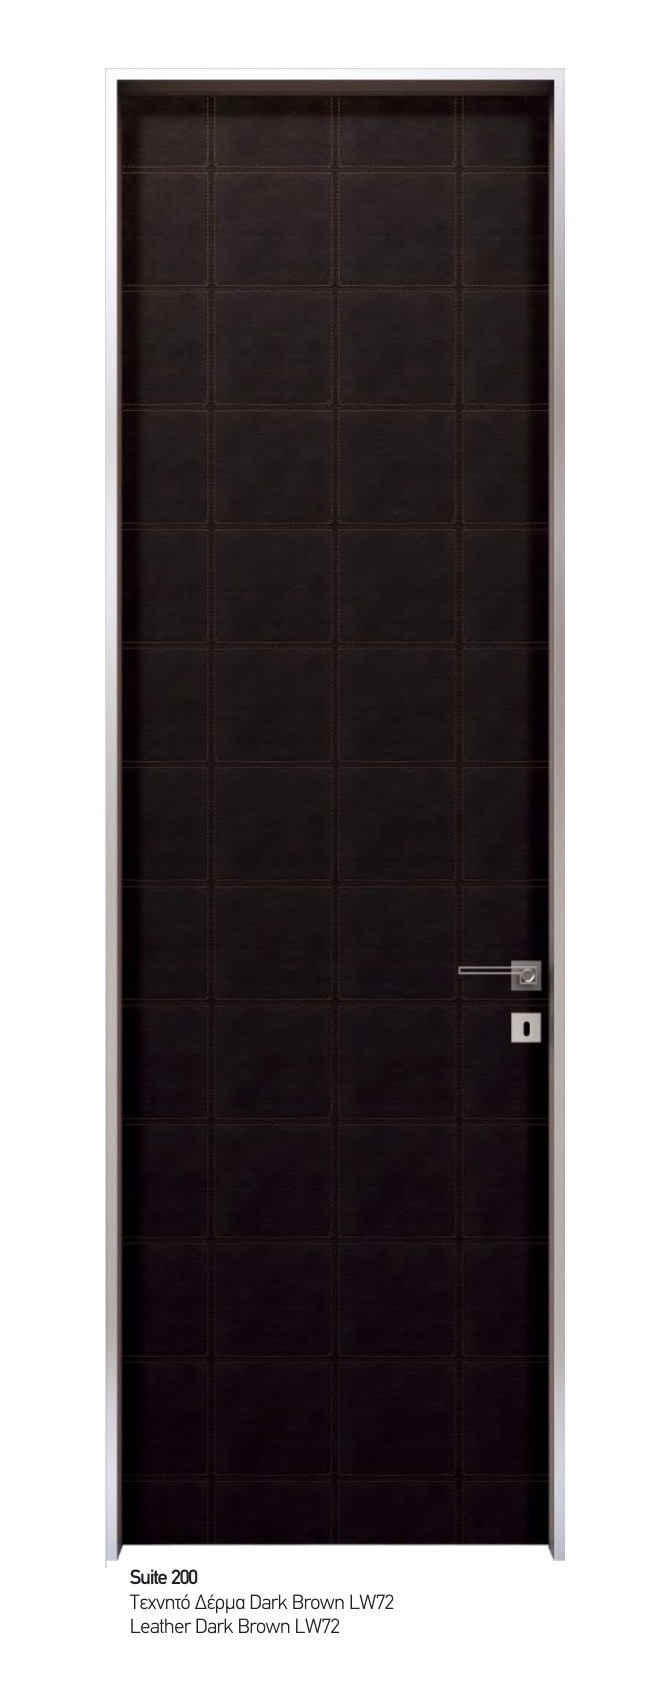 Suite 200 Leather Dark Brown LW72